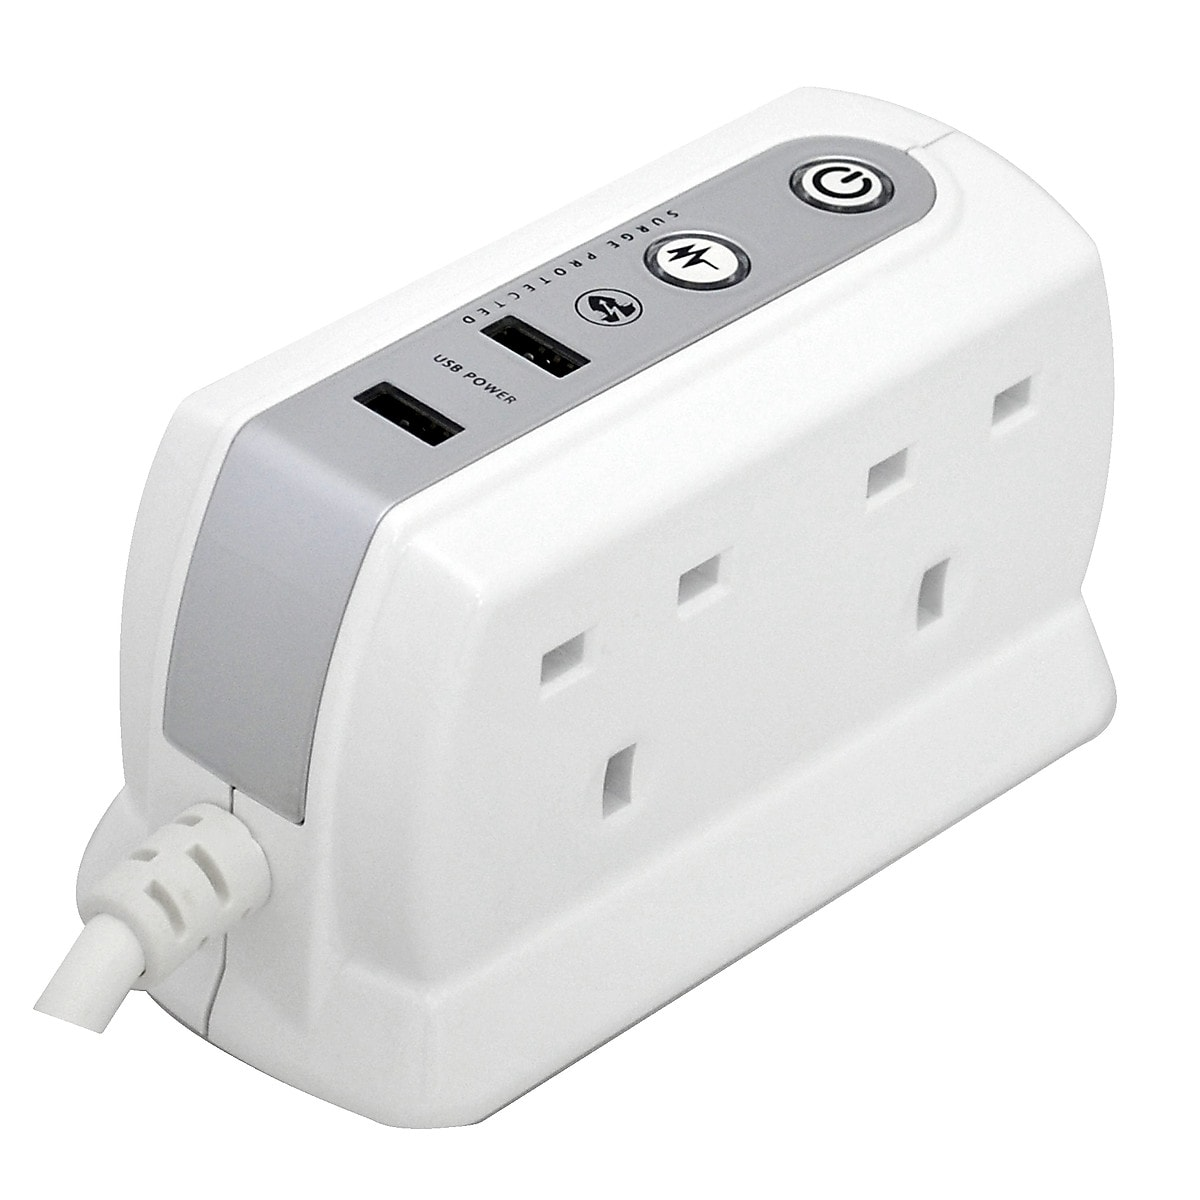 Masterplug USB Surge Protected Extension Lead